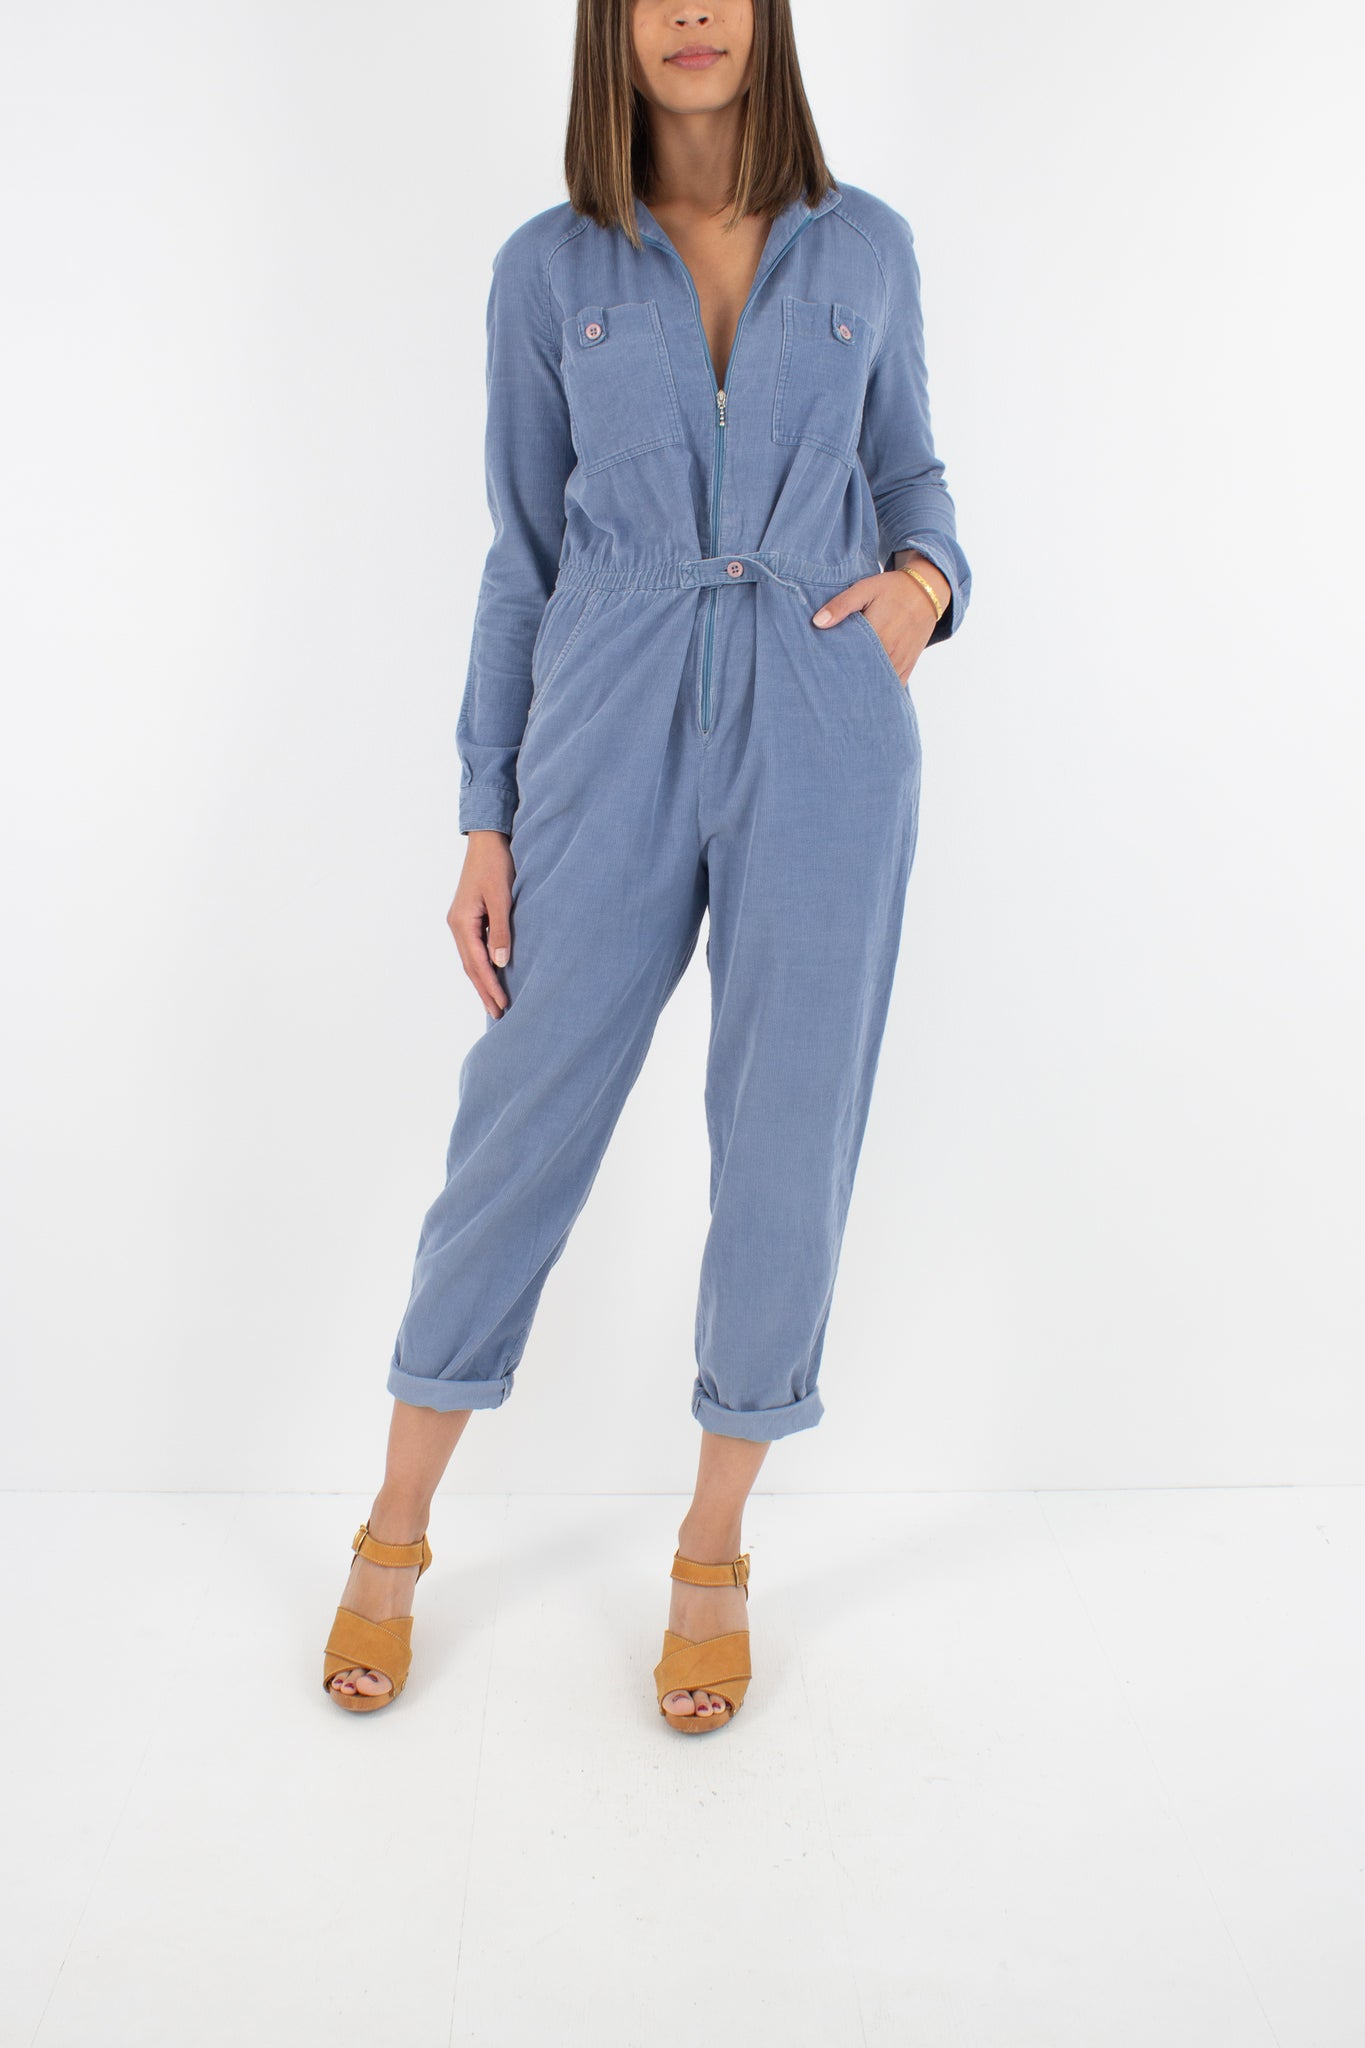 Powder Blue Cord Jumpsuit - Size M